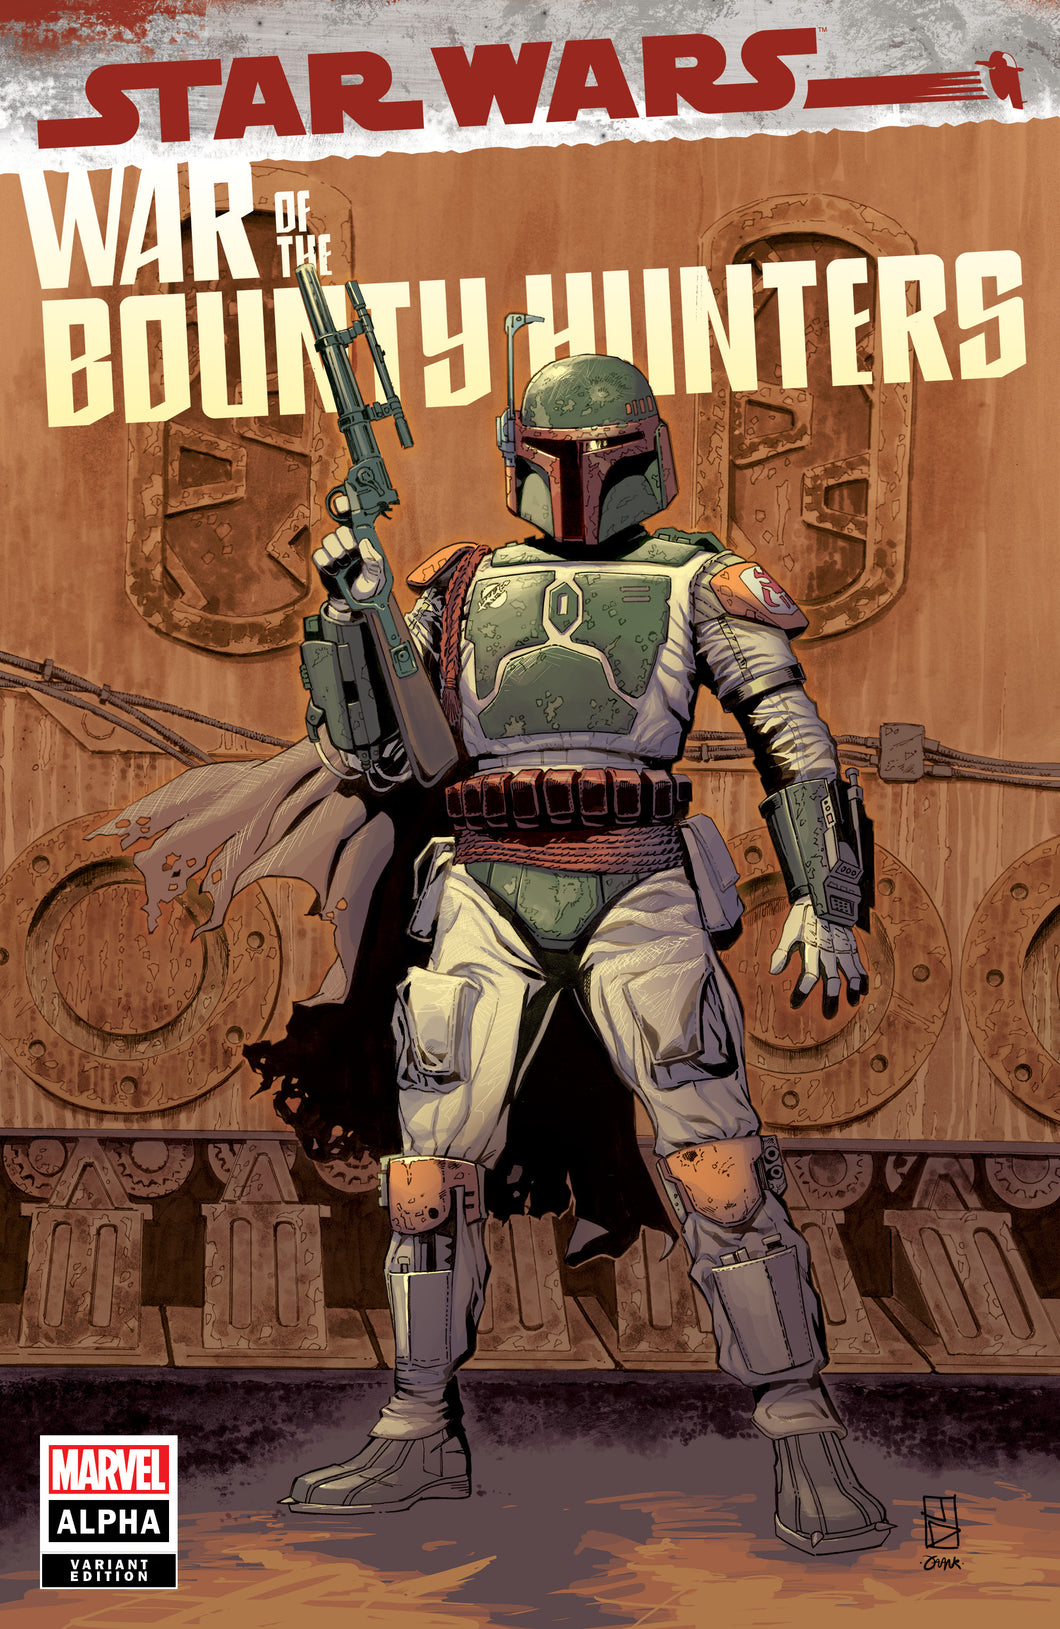 PRESALE - Star Wars: War of the Bounty Hunters - Alpha #1 - STORE EXCLUSIVE